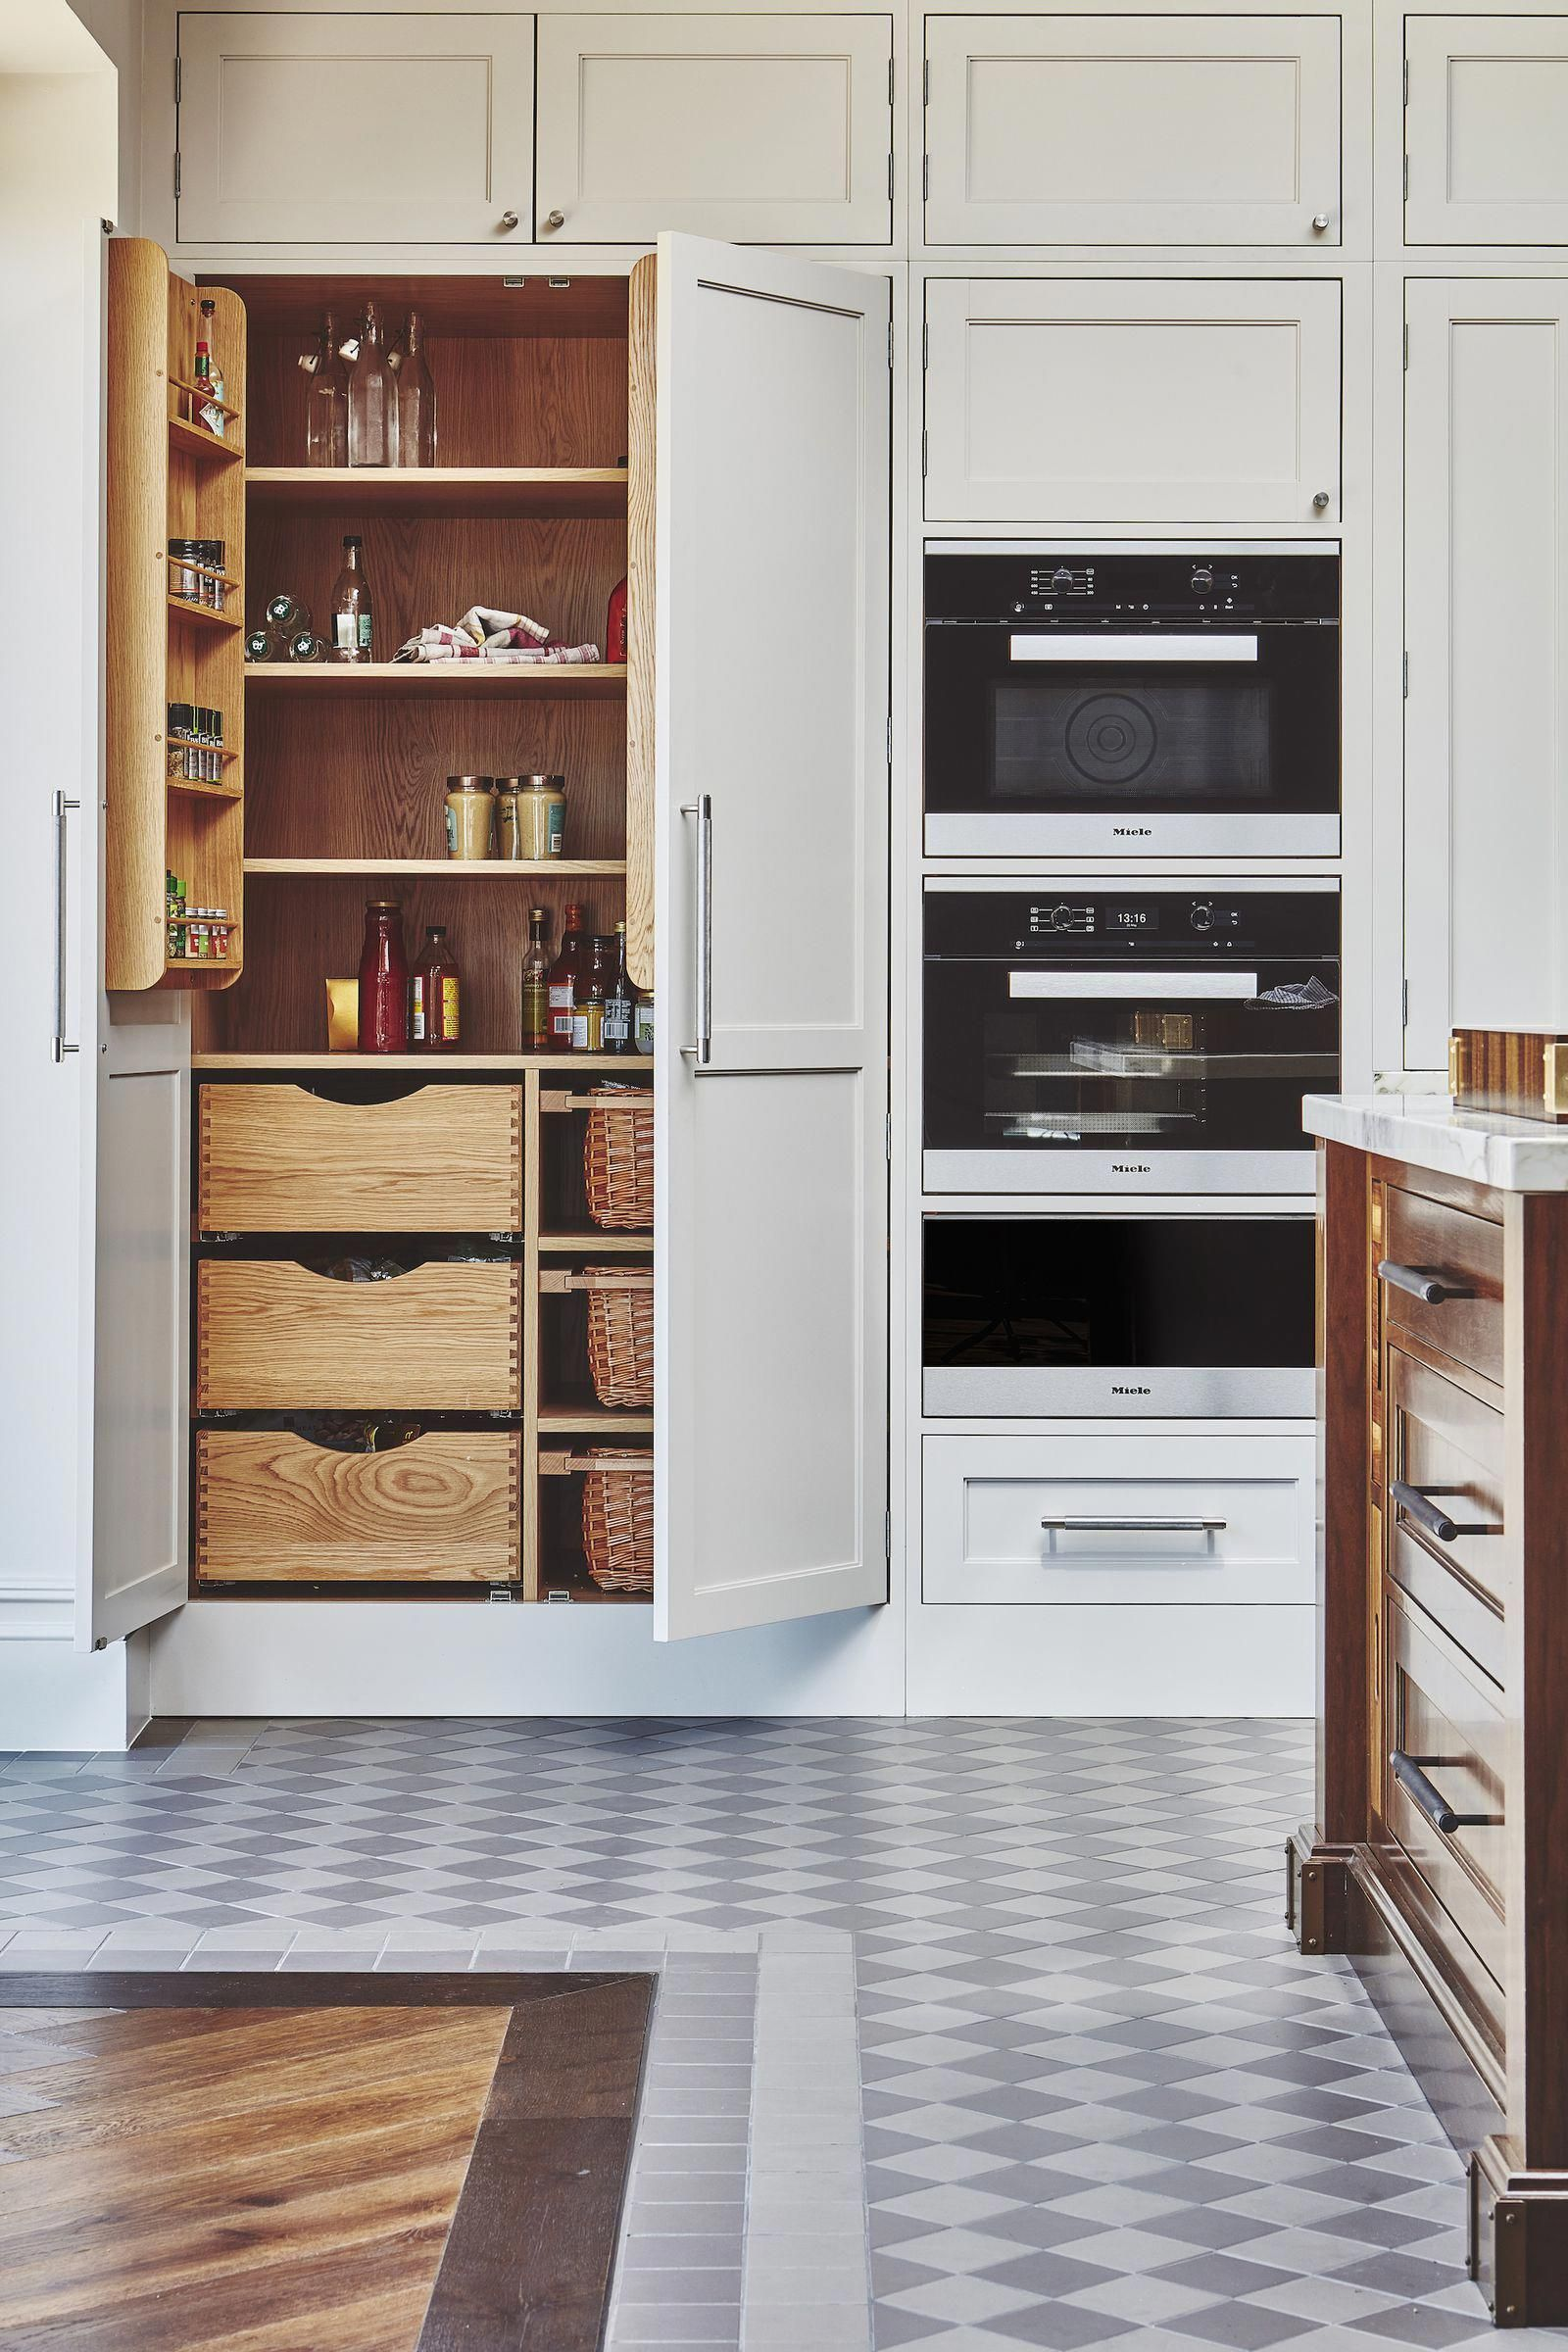 Built in Larders. Also - look at the floor - tiles meets wooden flooring. Done nicely. Wooden interior of Larder compliments wooden flooring really well. #kitchendesign